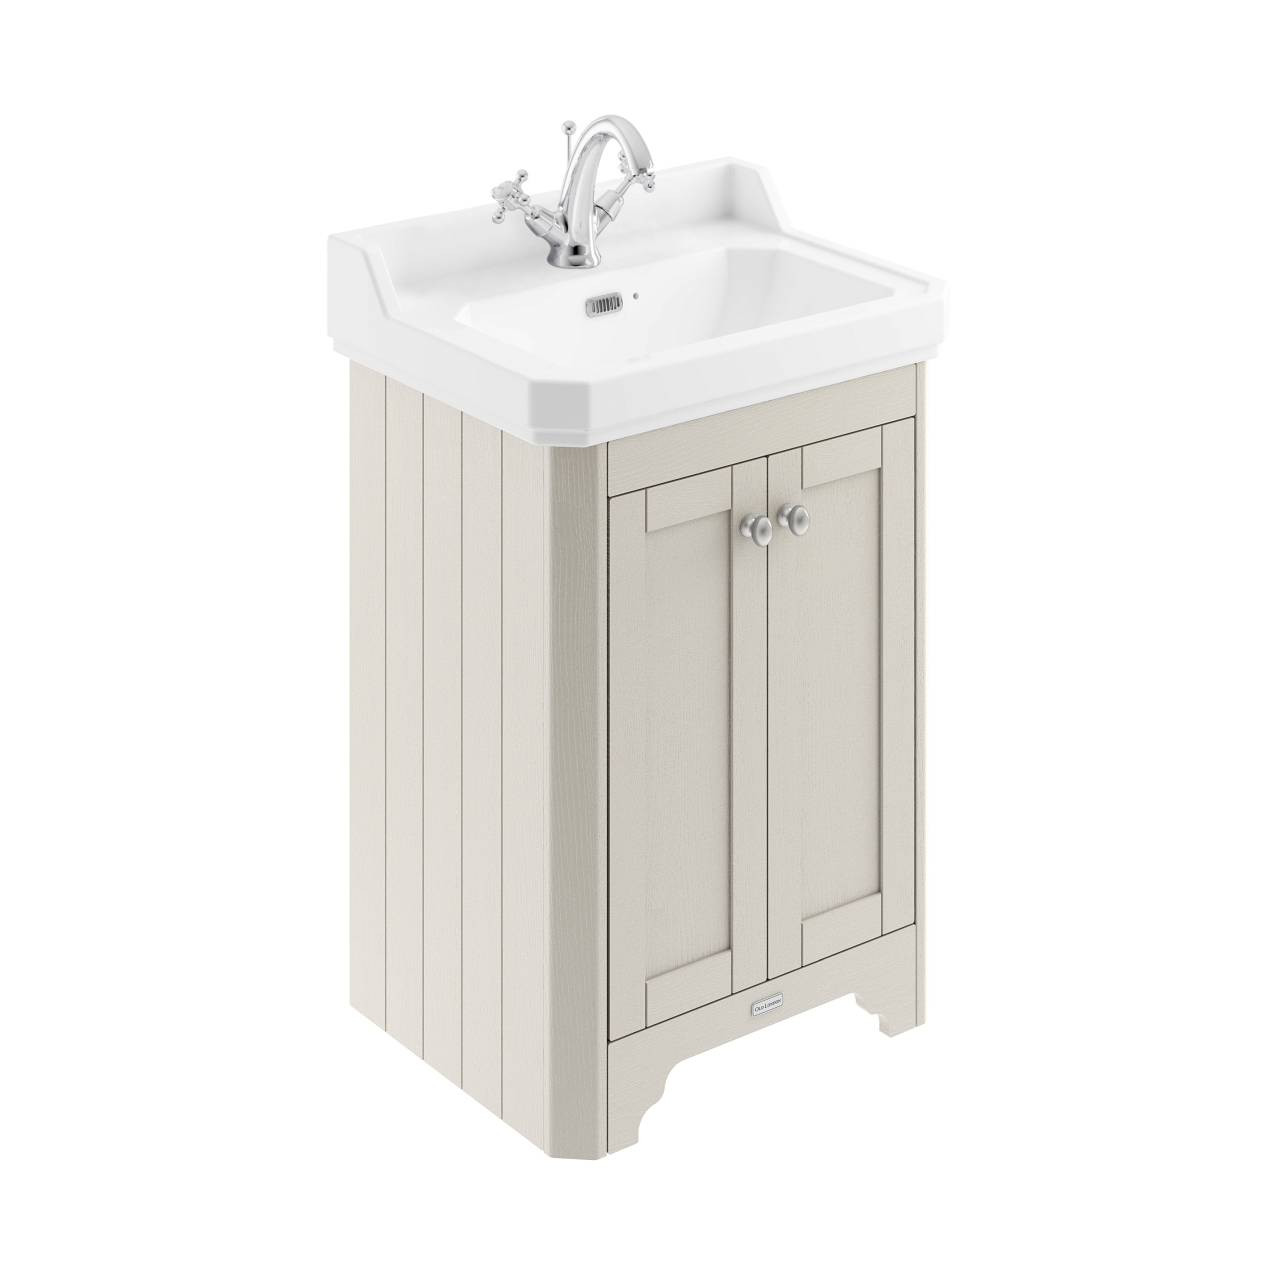 Old London Timeless Sand 595mm 2 Door Vanity Unit and Basin with 1 Tap Hole - LOF470